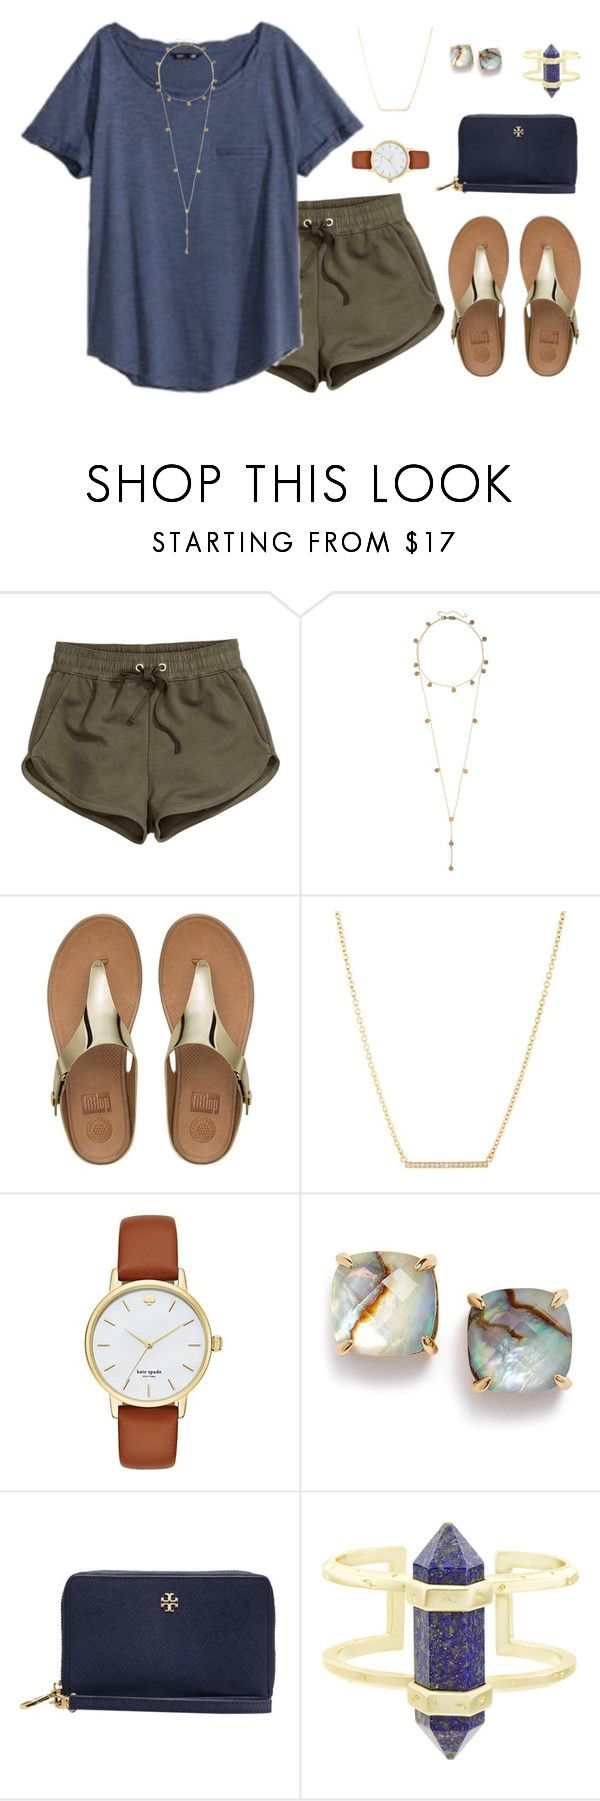 """""""•{U better run faster than my bullet}•"""" by livnewell ❤ liked on Polyvore featuring H&M, Vineyard Vines, Arme De L'Amour, FitFlop, Kate Spade, Tory Burch and Kendra Scott"""